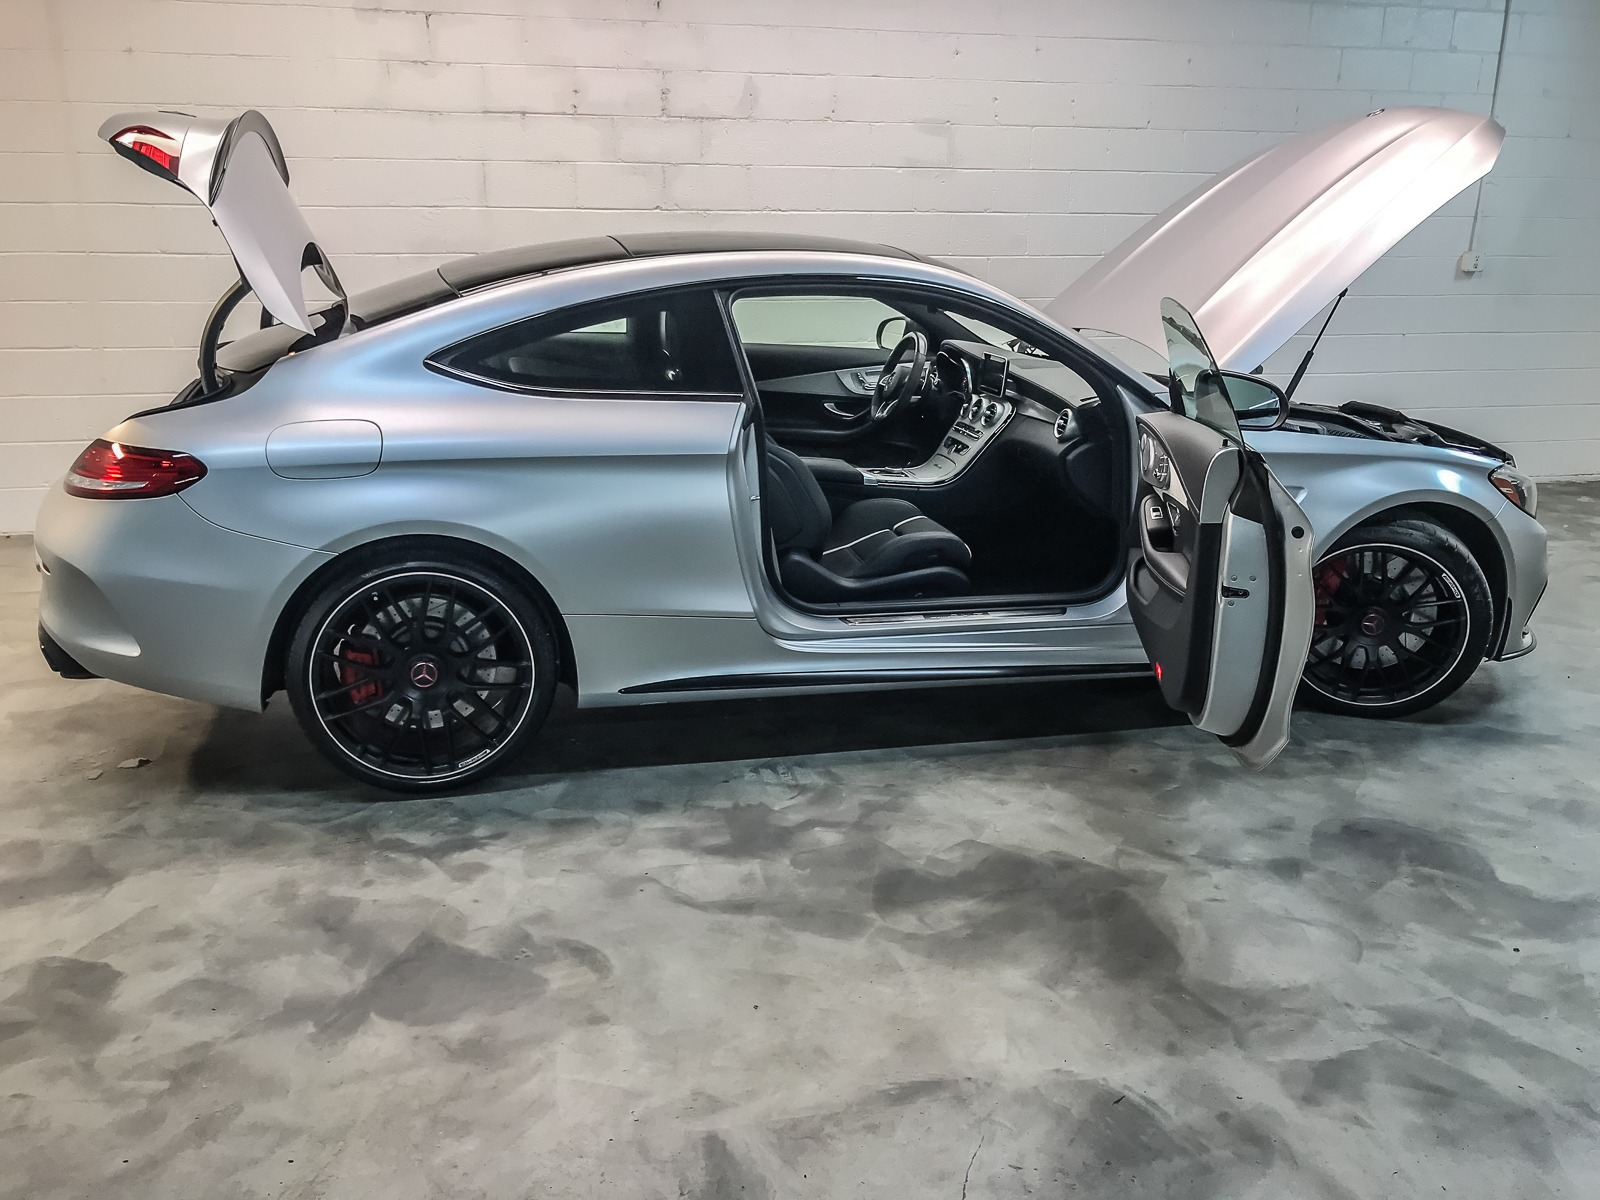 Used 2018 Mercedes Benz C63 Amg Amg C 63 S For Sale 59 991 Inetwork Auto Group Stock C633956